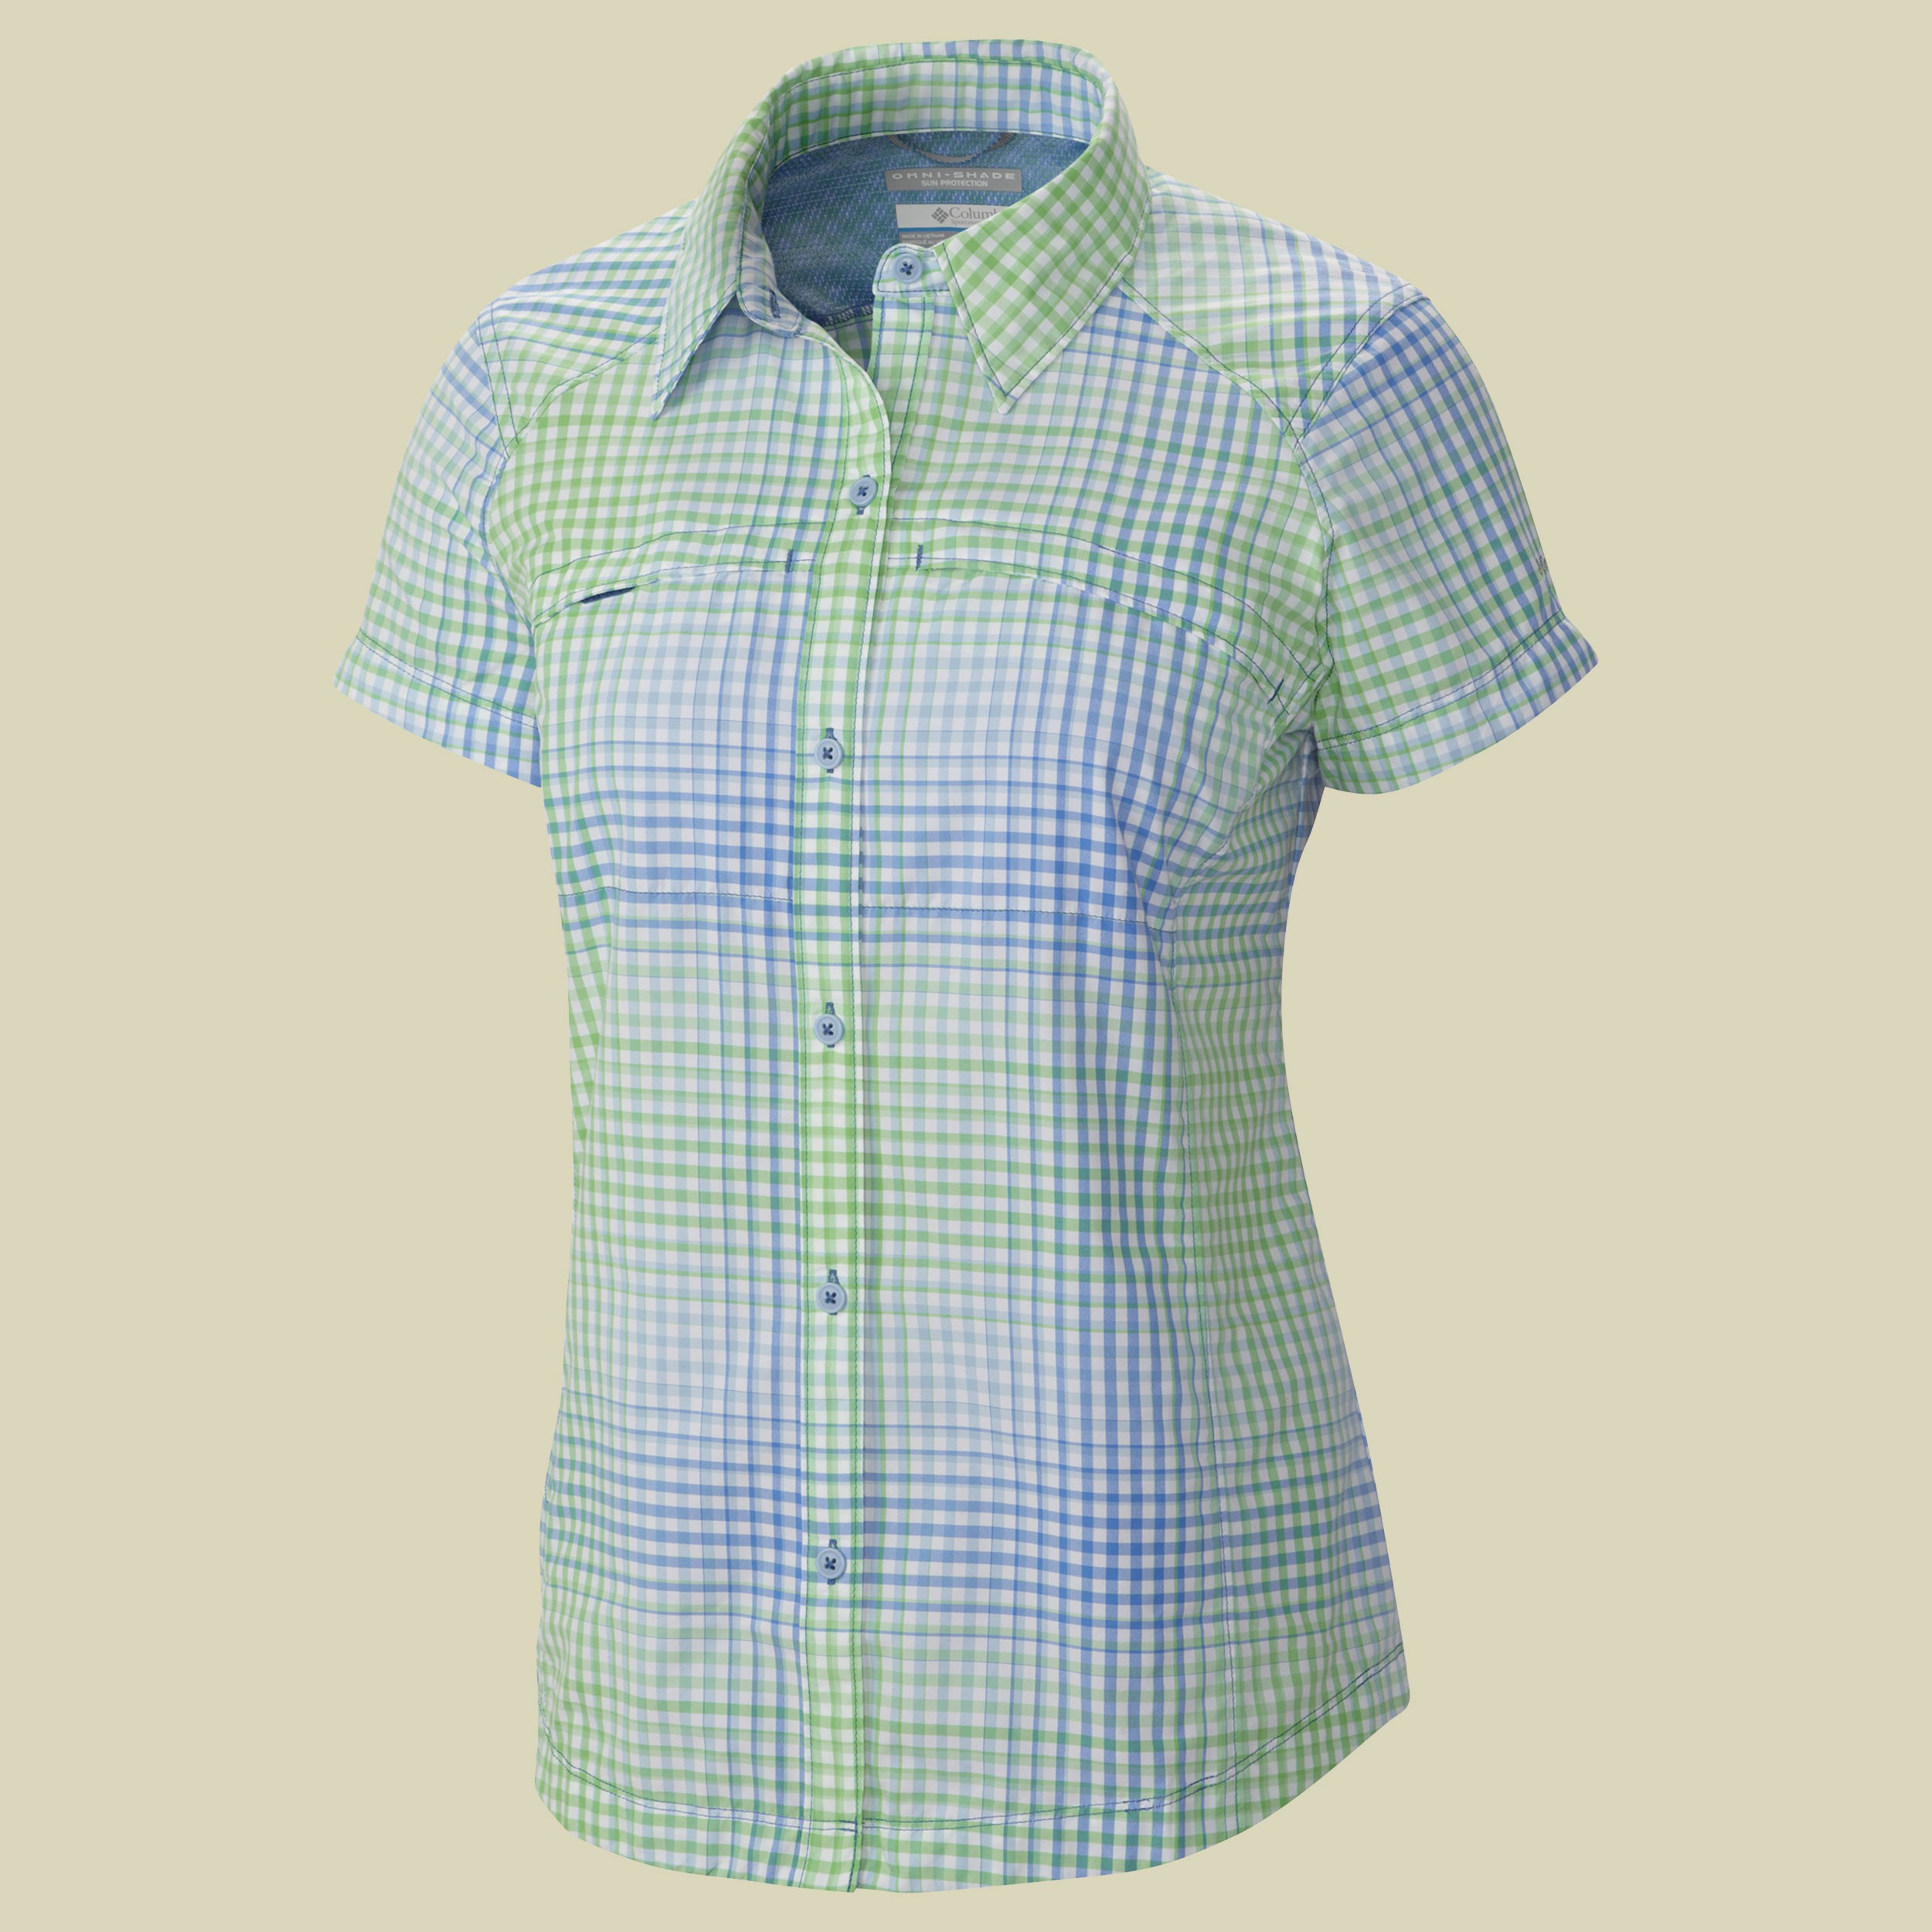 Silver Ridge Multi Plaid Short Sleeve Shirt Women